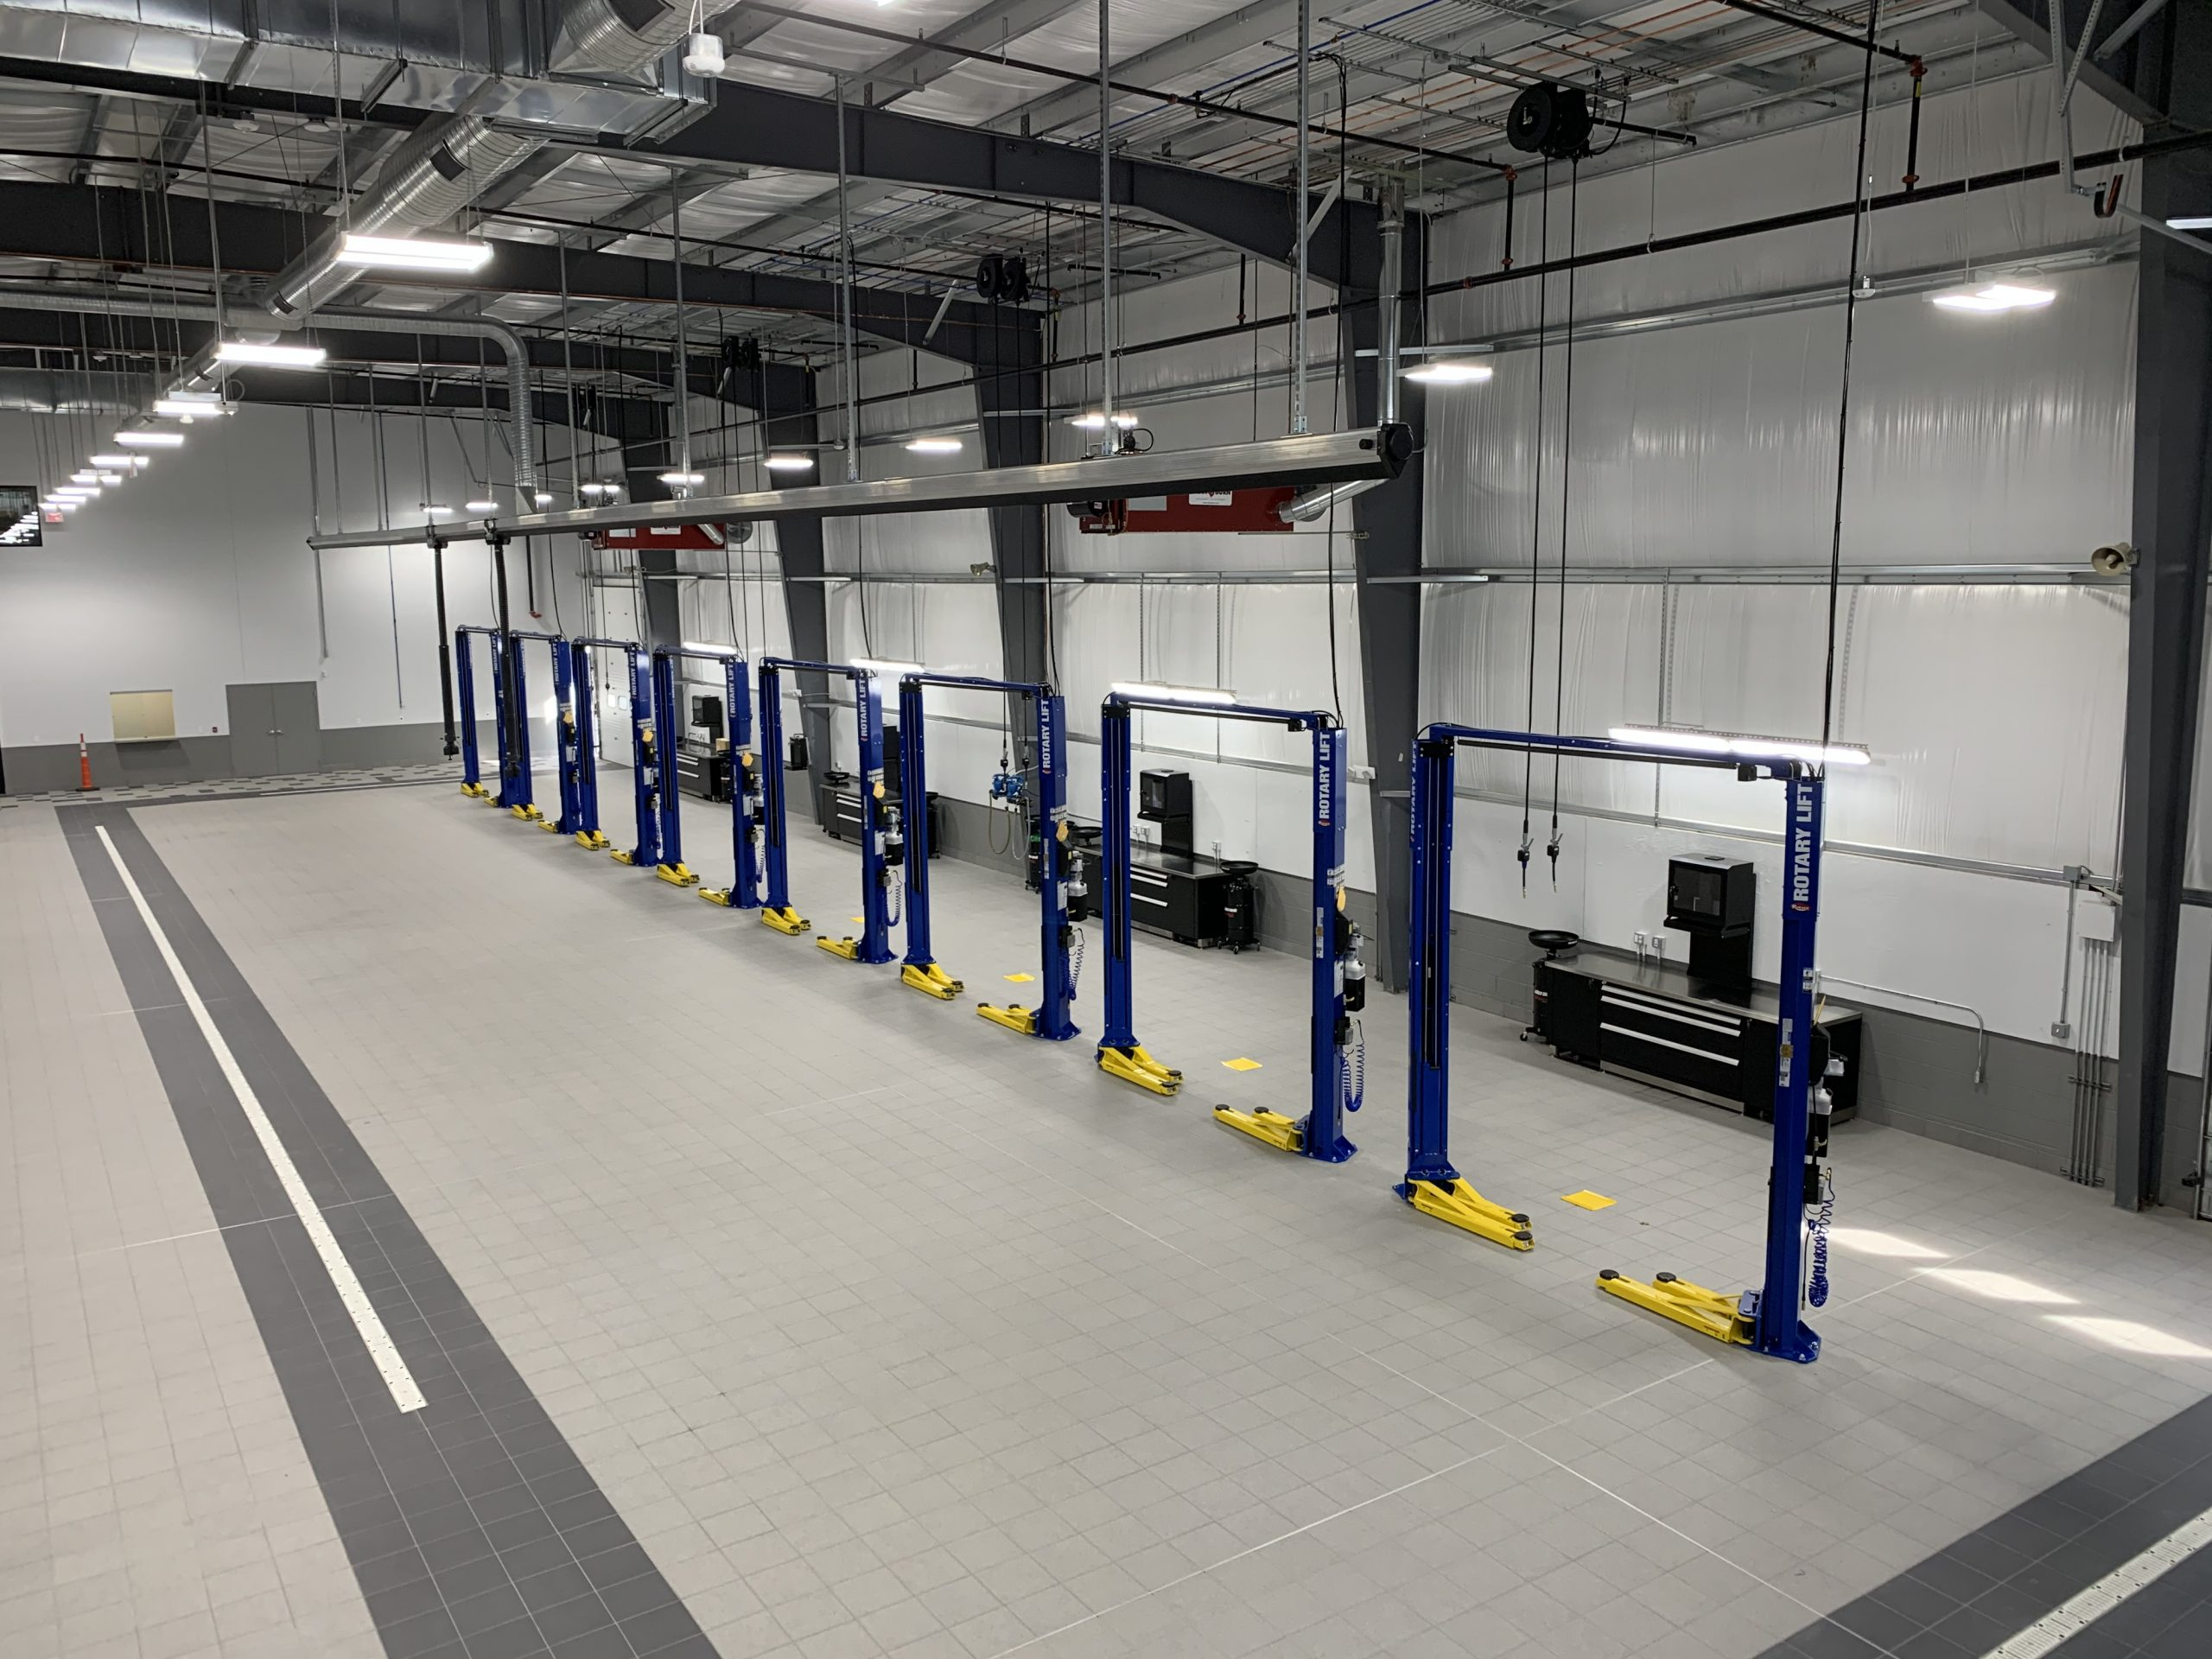 Colonial Mazda Service Bays with Lifts